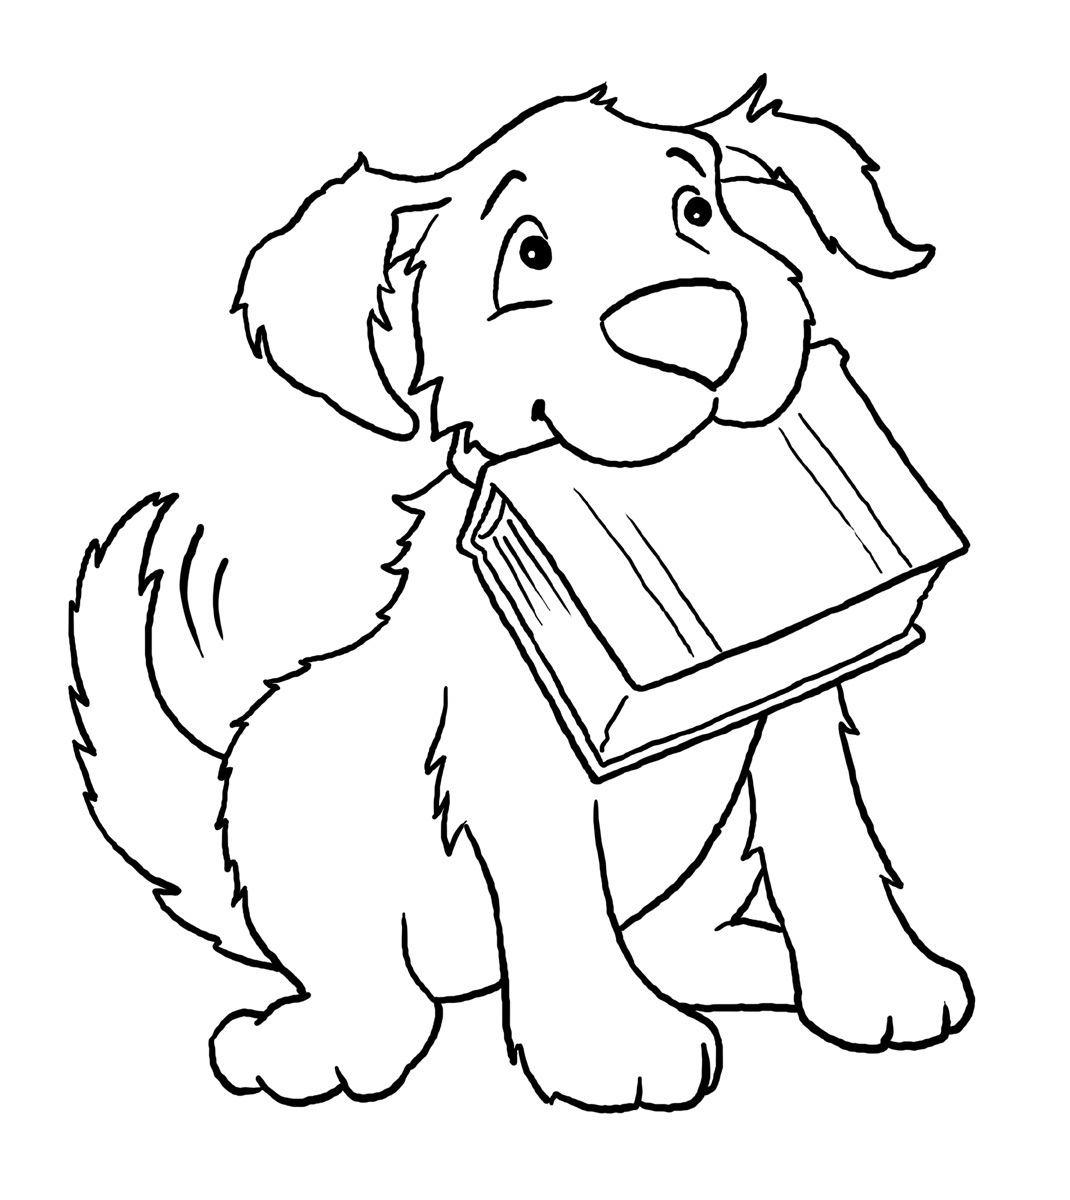 Free printable dog coloring pages for kids for Best coloring pages for kids